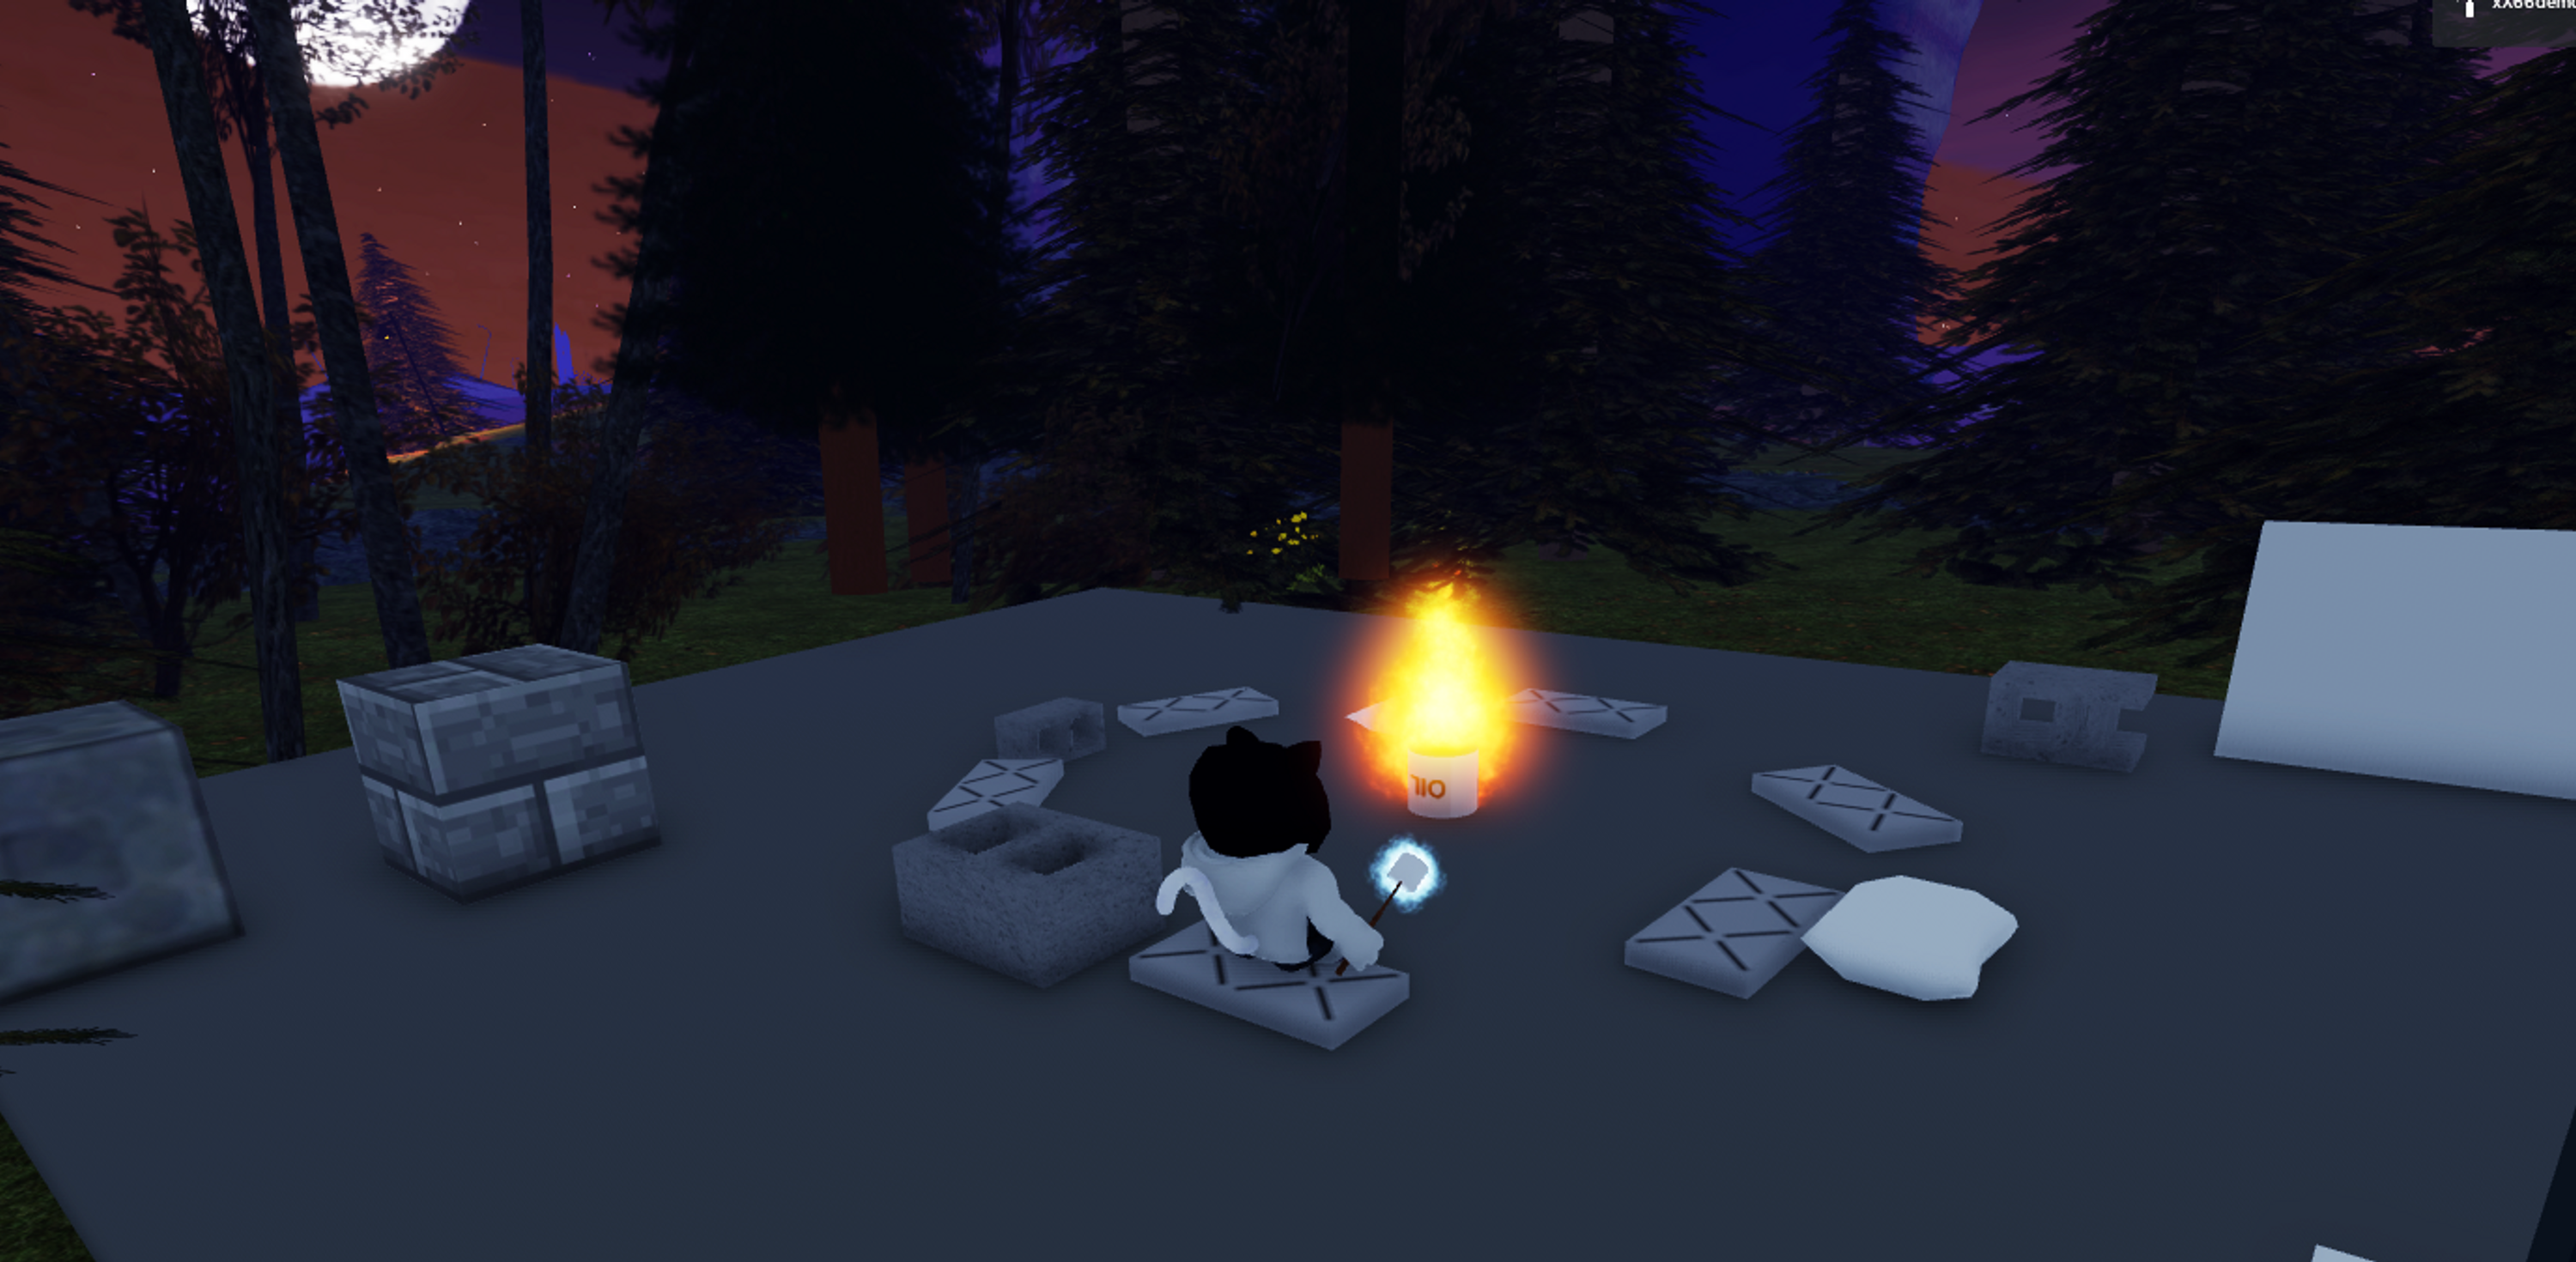 Screenshot of my avatar sitting at a fire in Roblox, holding a marshmallow, surrounded by the night sky with a big moon and dark trees.